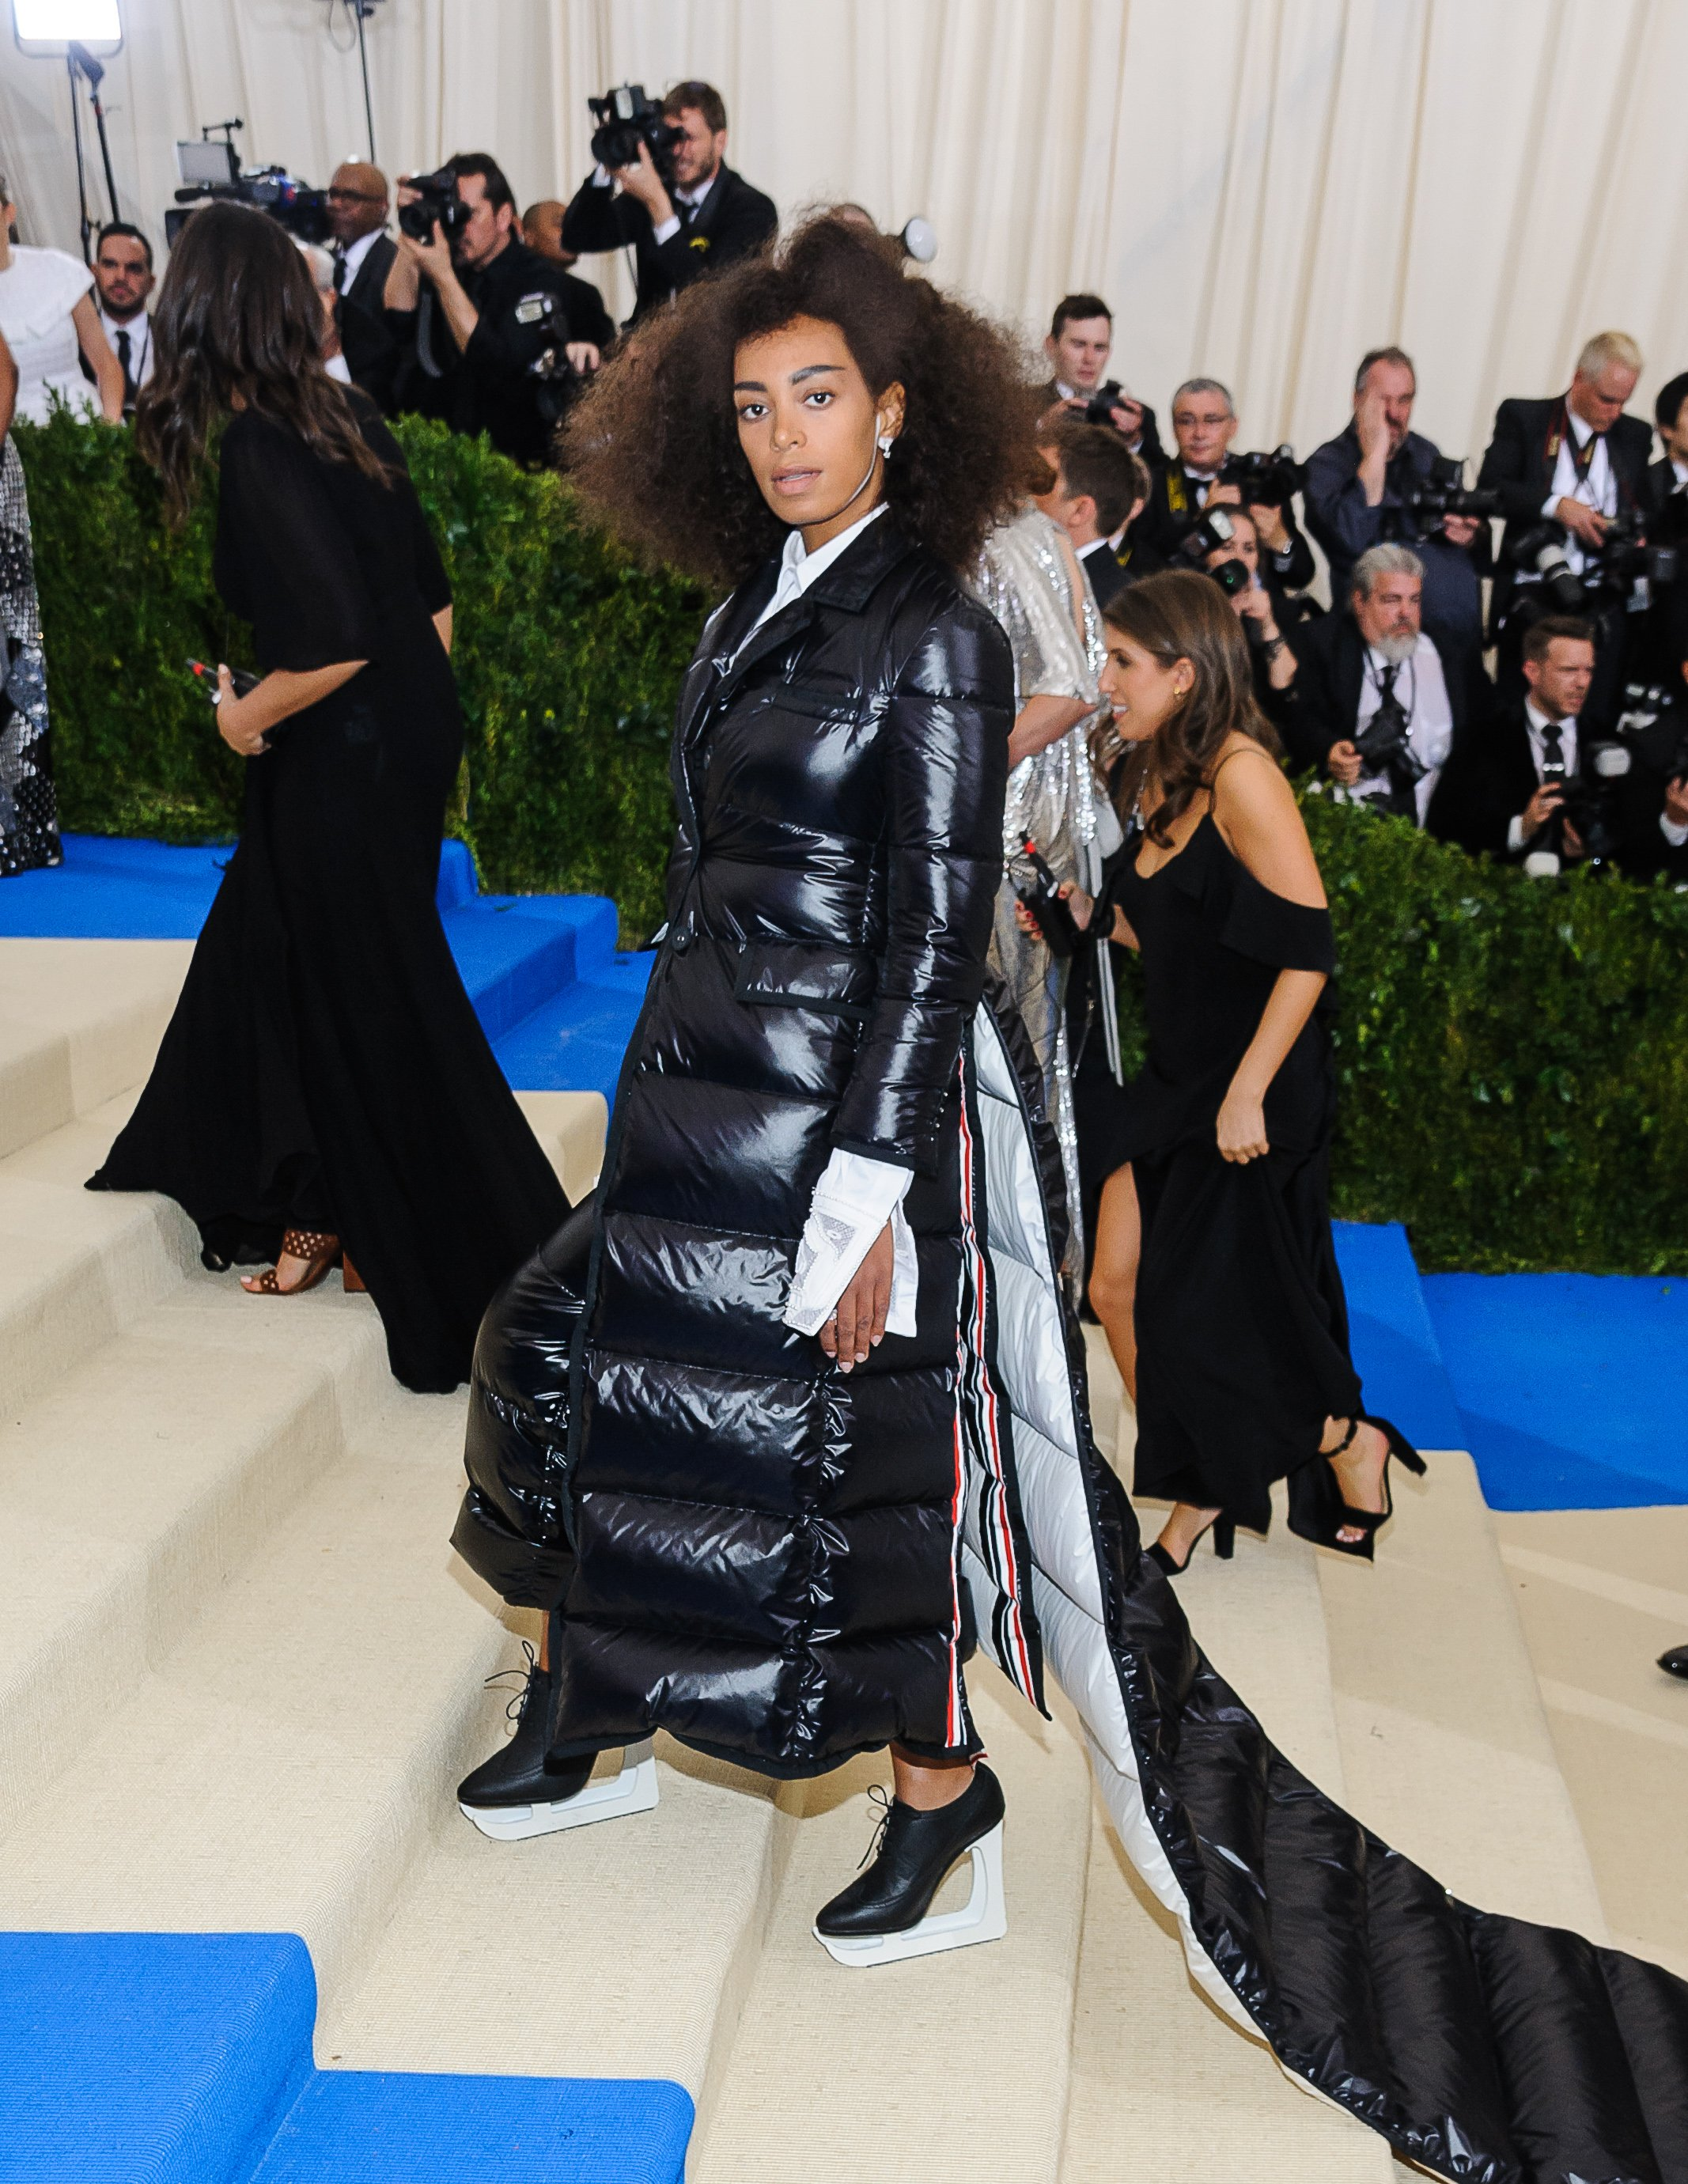 01 May 2017 - Solange Knowles. 2017 Metropolitan Museum of Art Costume Institute Benefit Gala at The Metropolitan Museum of Art., Image: 330903832, License: Rights-managed, Restrictions: , Model Release: no, Credit line: Profimedia, ADMedia